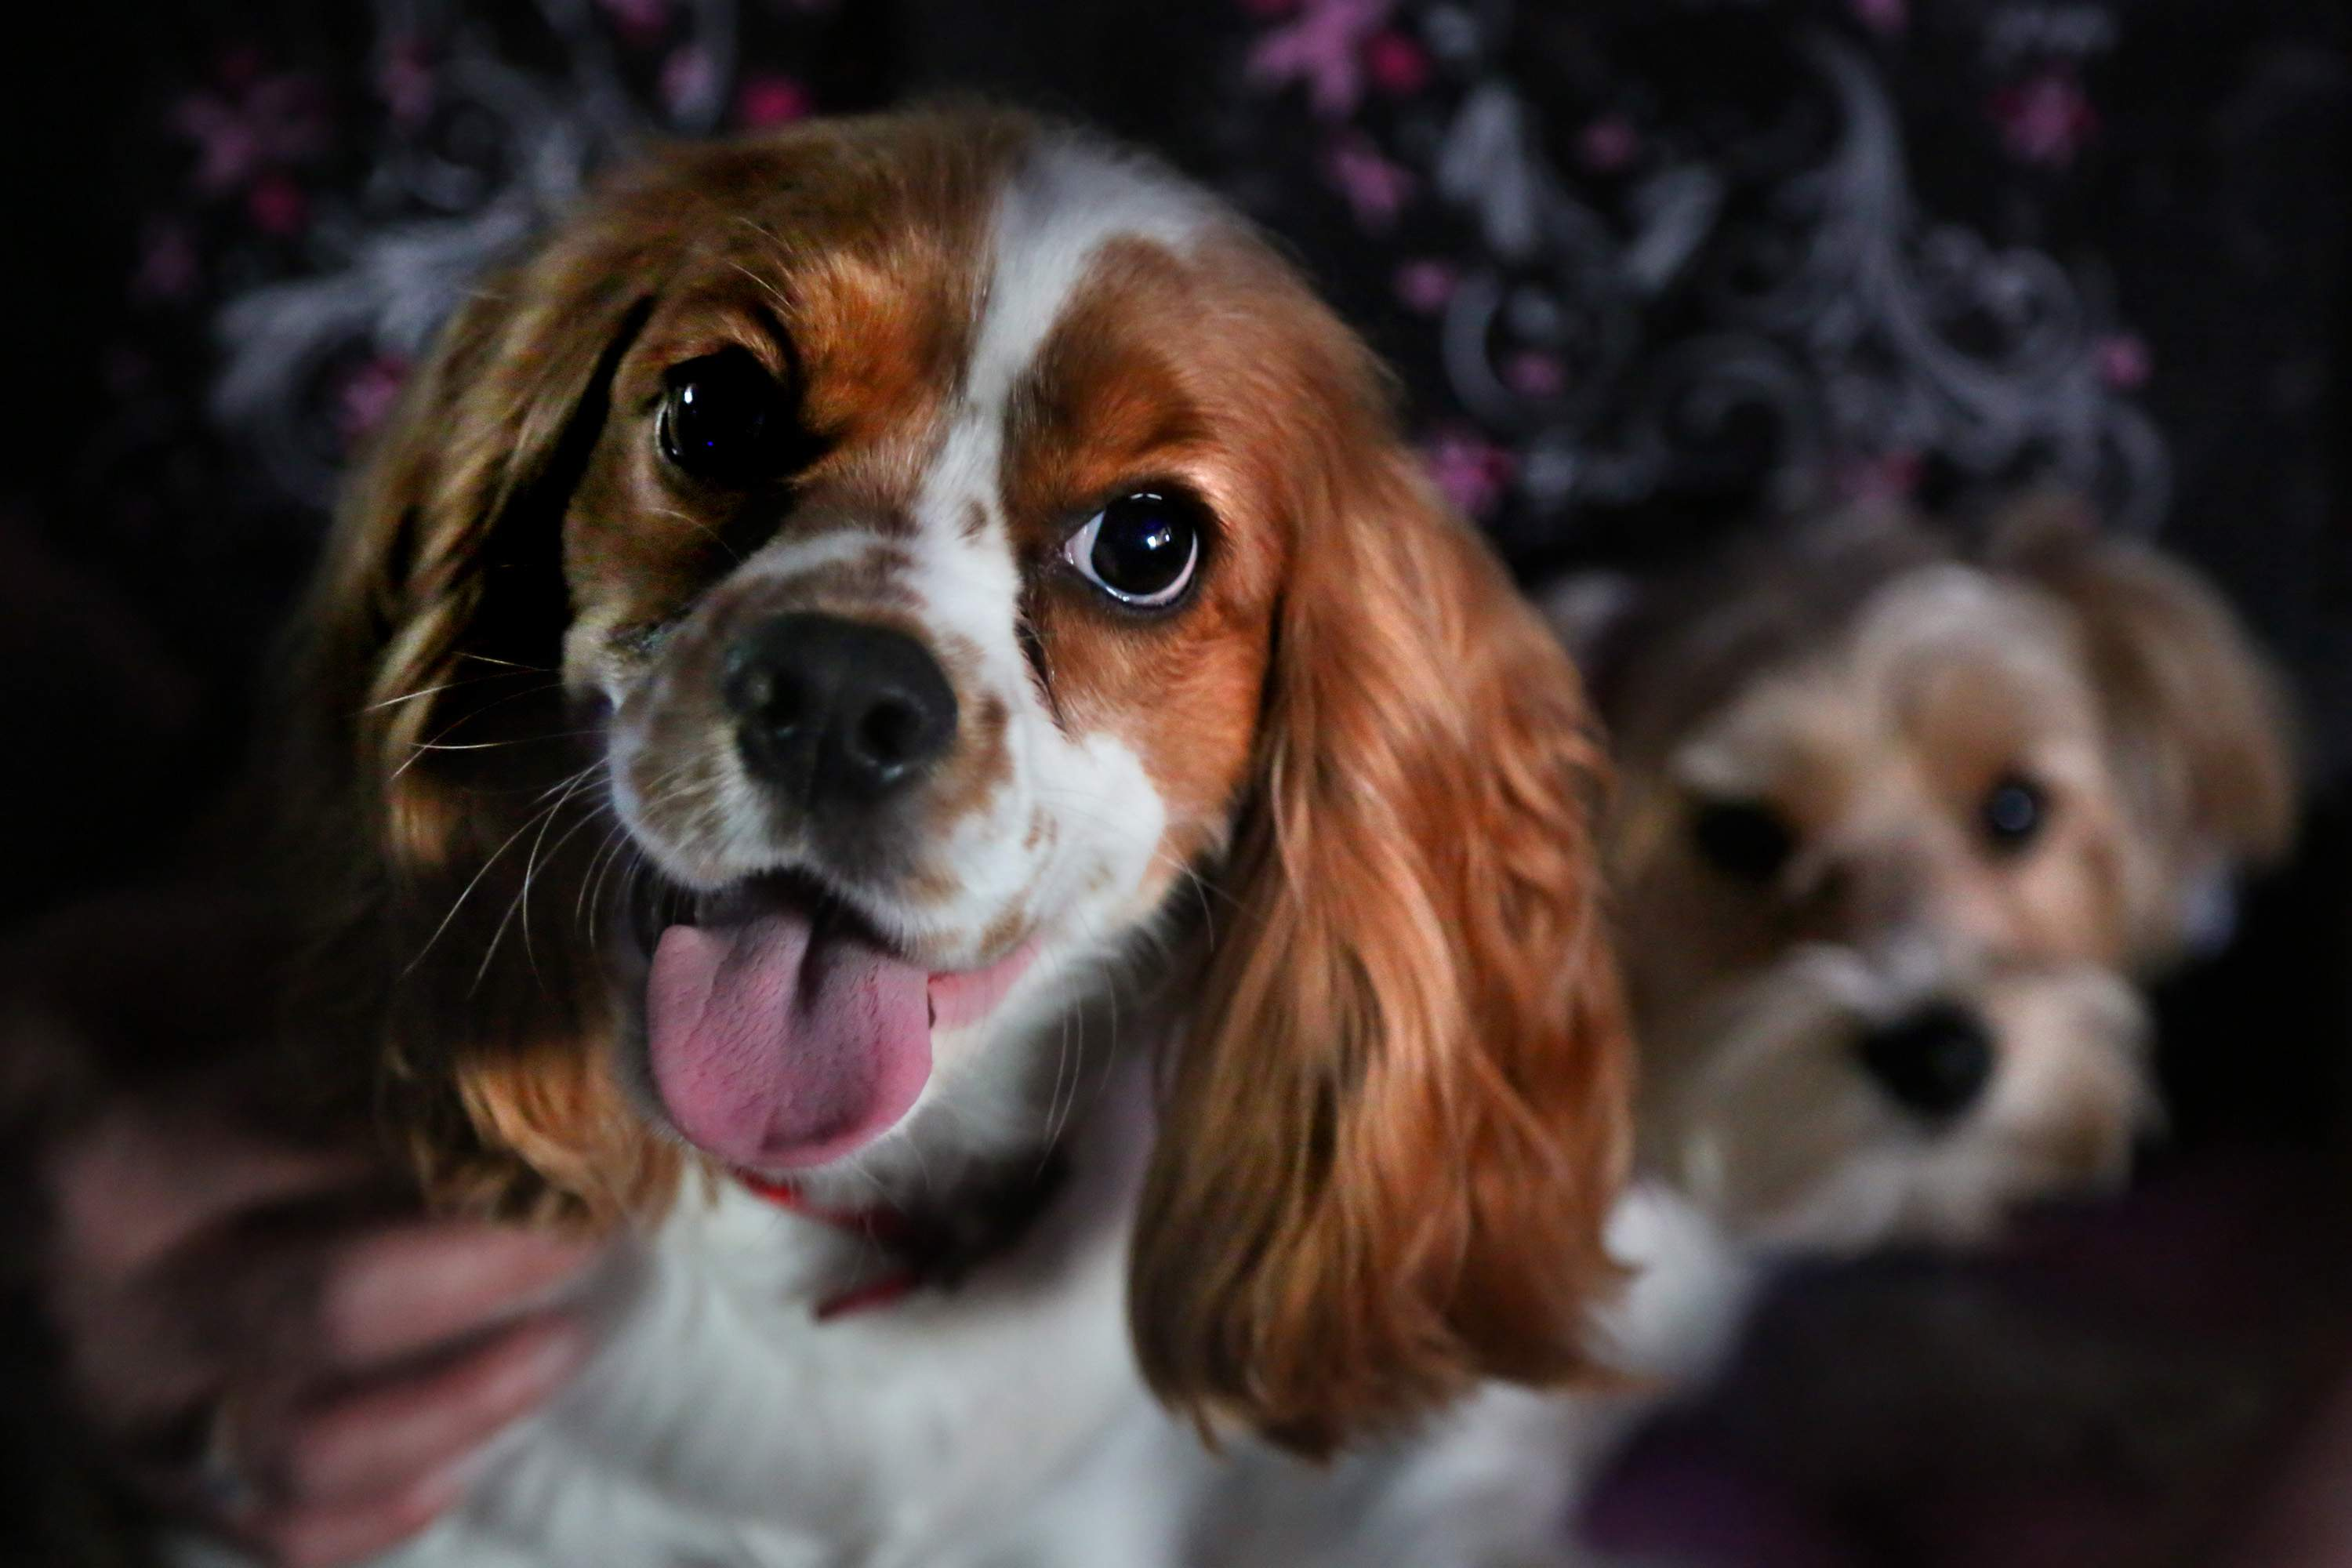 A Florida House bill could make it legal to sell puppy mill